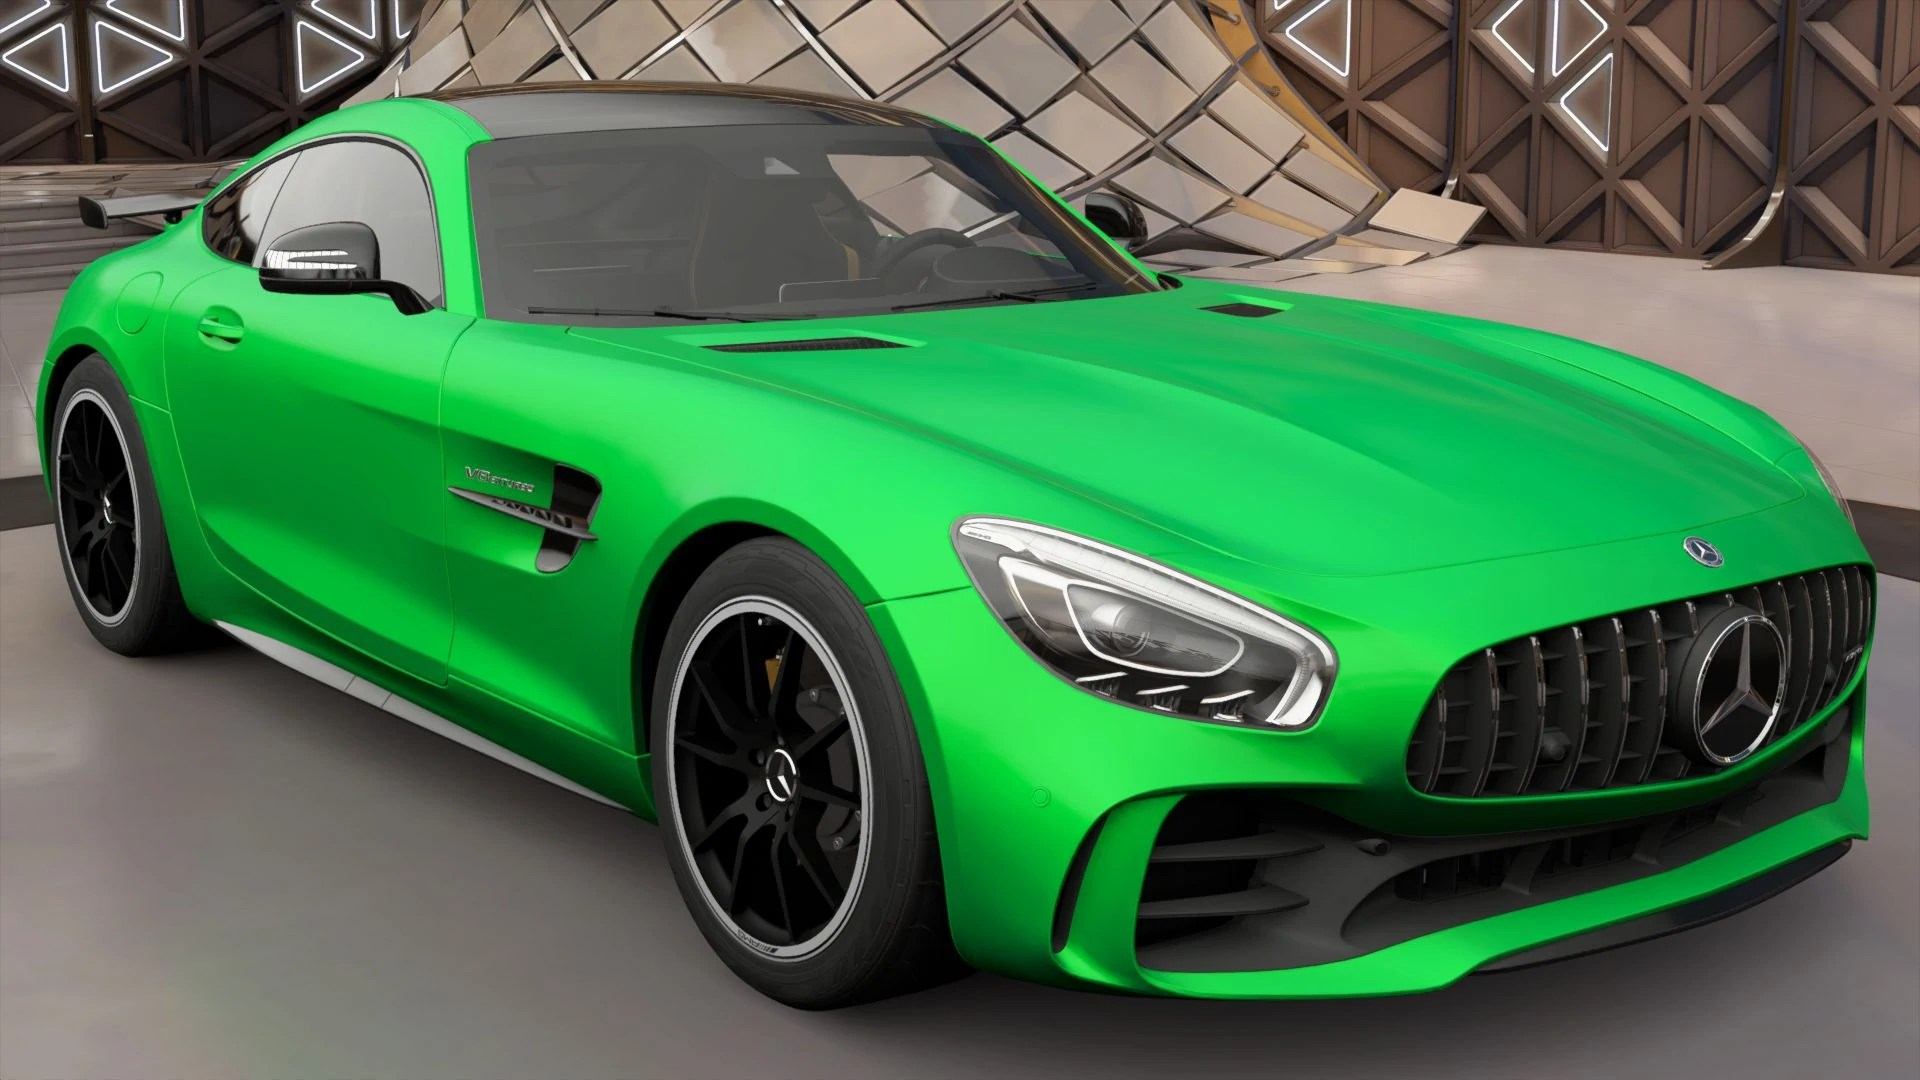 Mercedes Amg Mercedes Amg Gt R Forza Motorsport Wiki Fandom Powered By Wikia